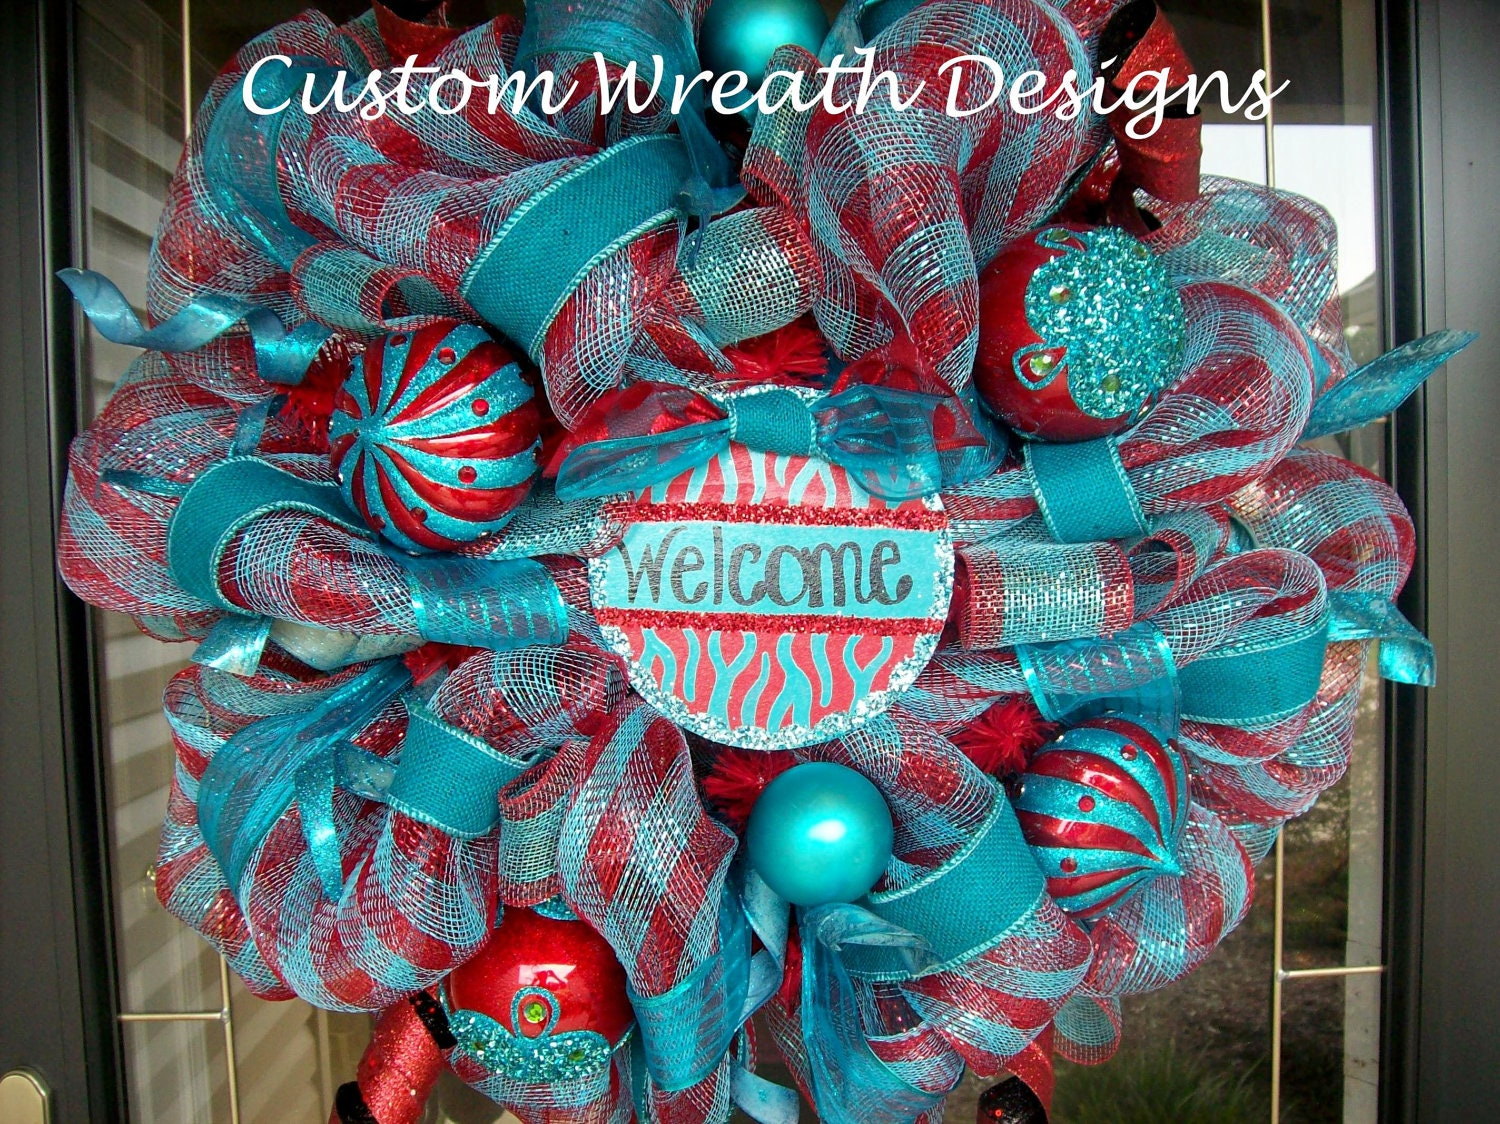 Red and Turquoise Glitzy Christmas Mesh Wreath